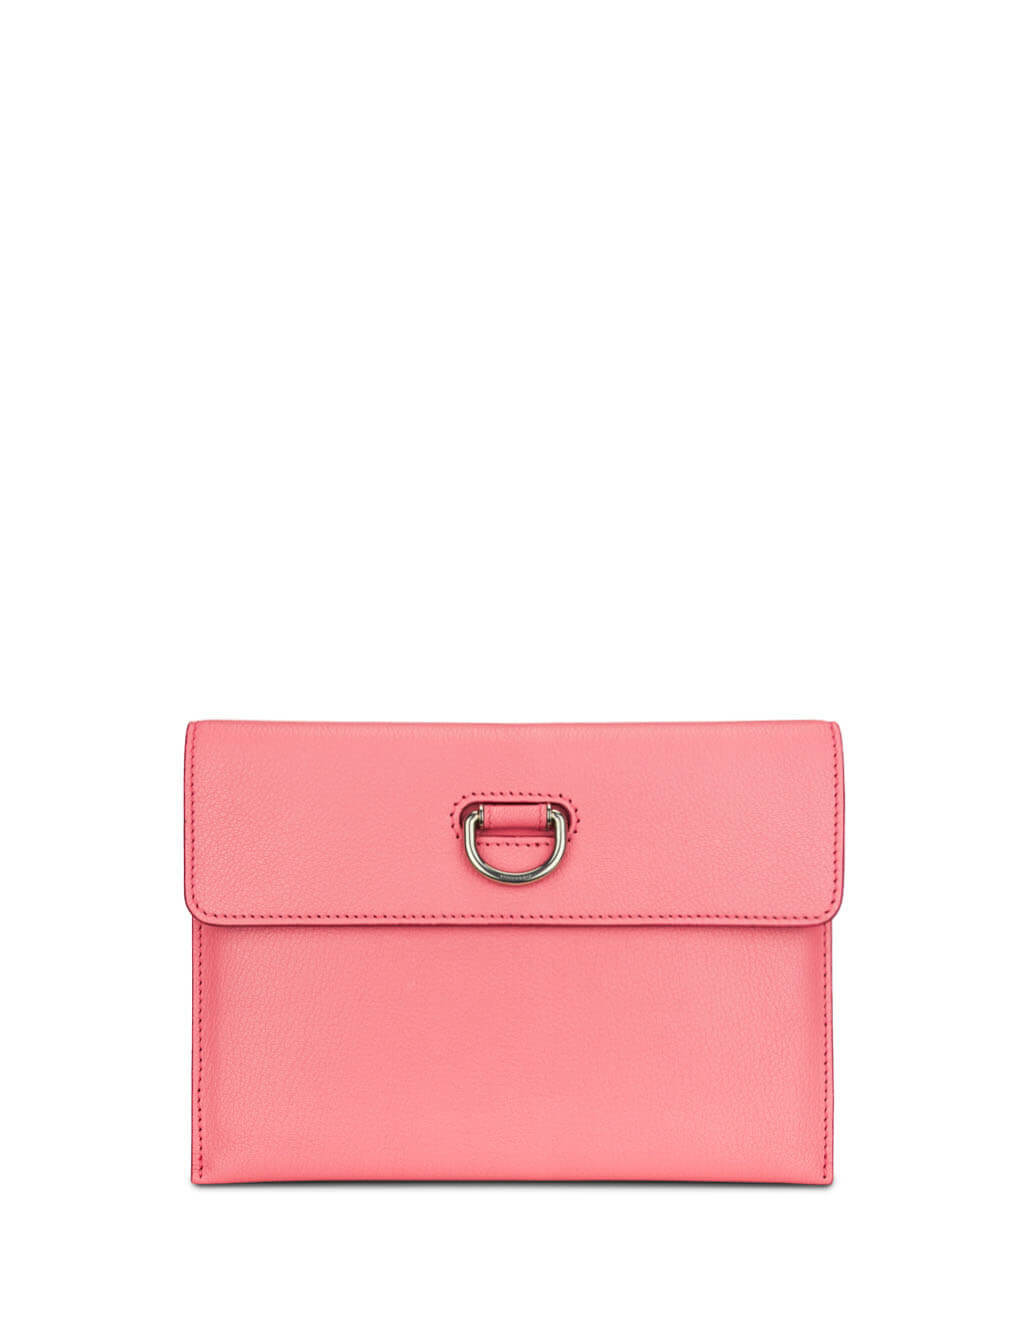 Burberry Women's Giulio Fashion Coral Pink D Ring Leather Pouch With Zip Coin Purse 407503767120